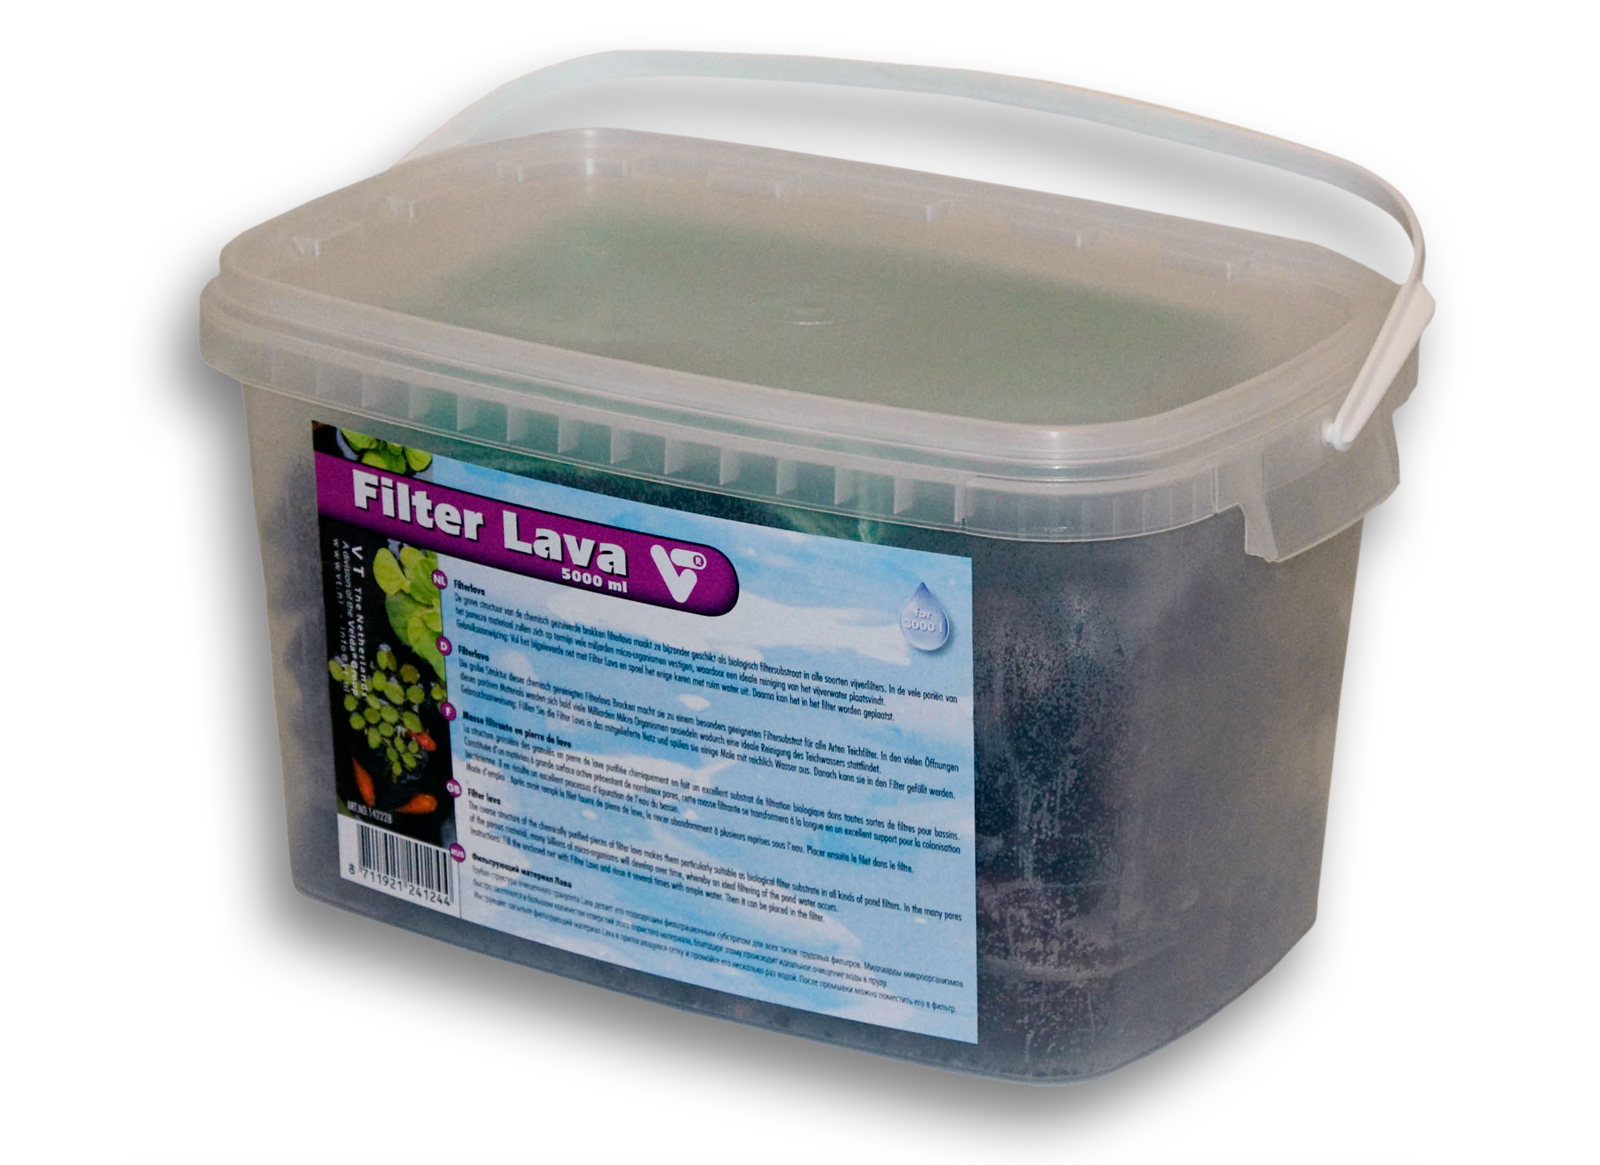 Velda vt pond filter lava bucket with 5000ml for Pond water purifier